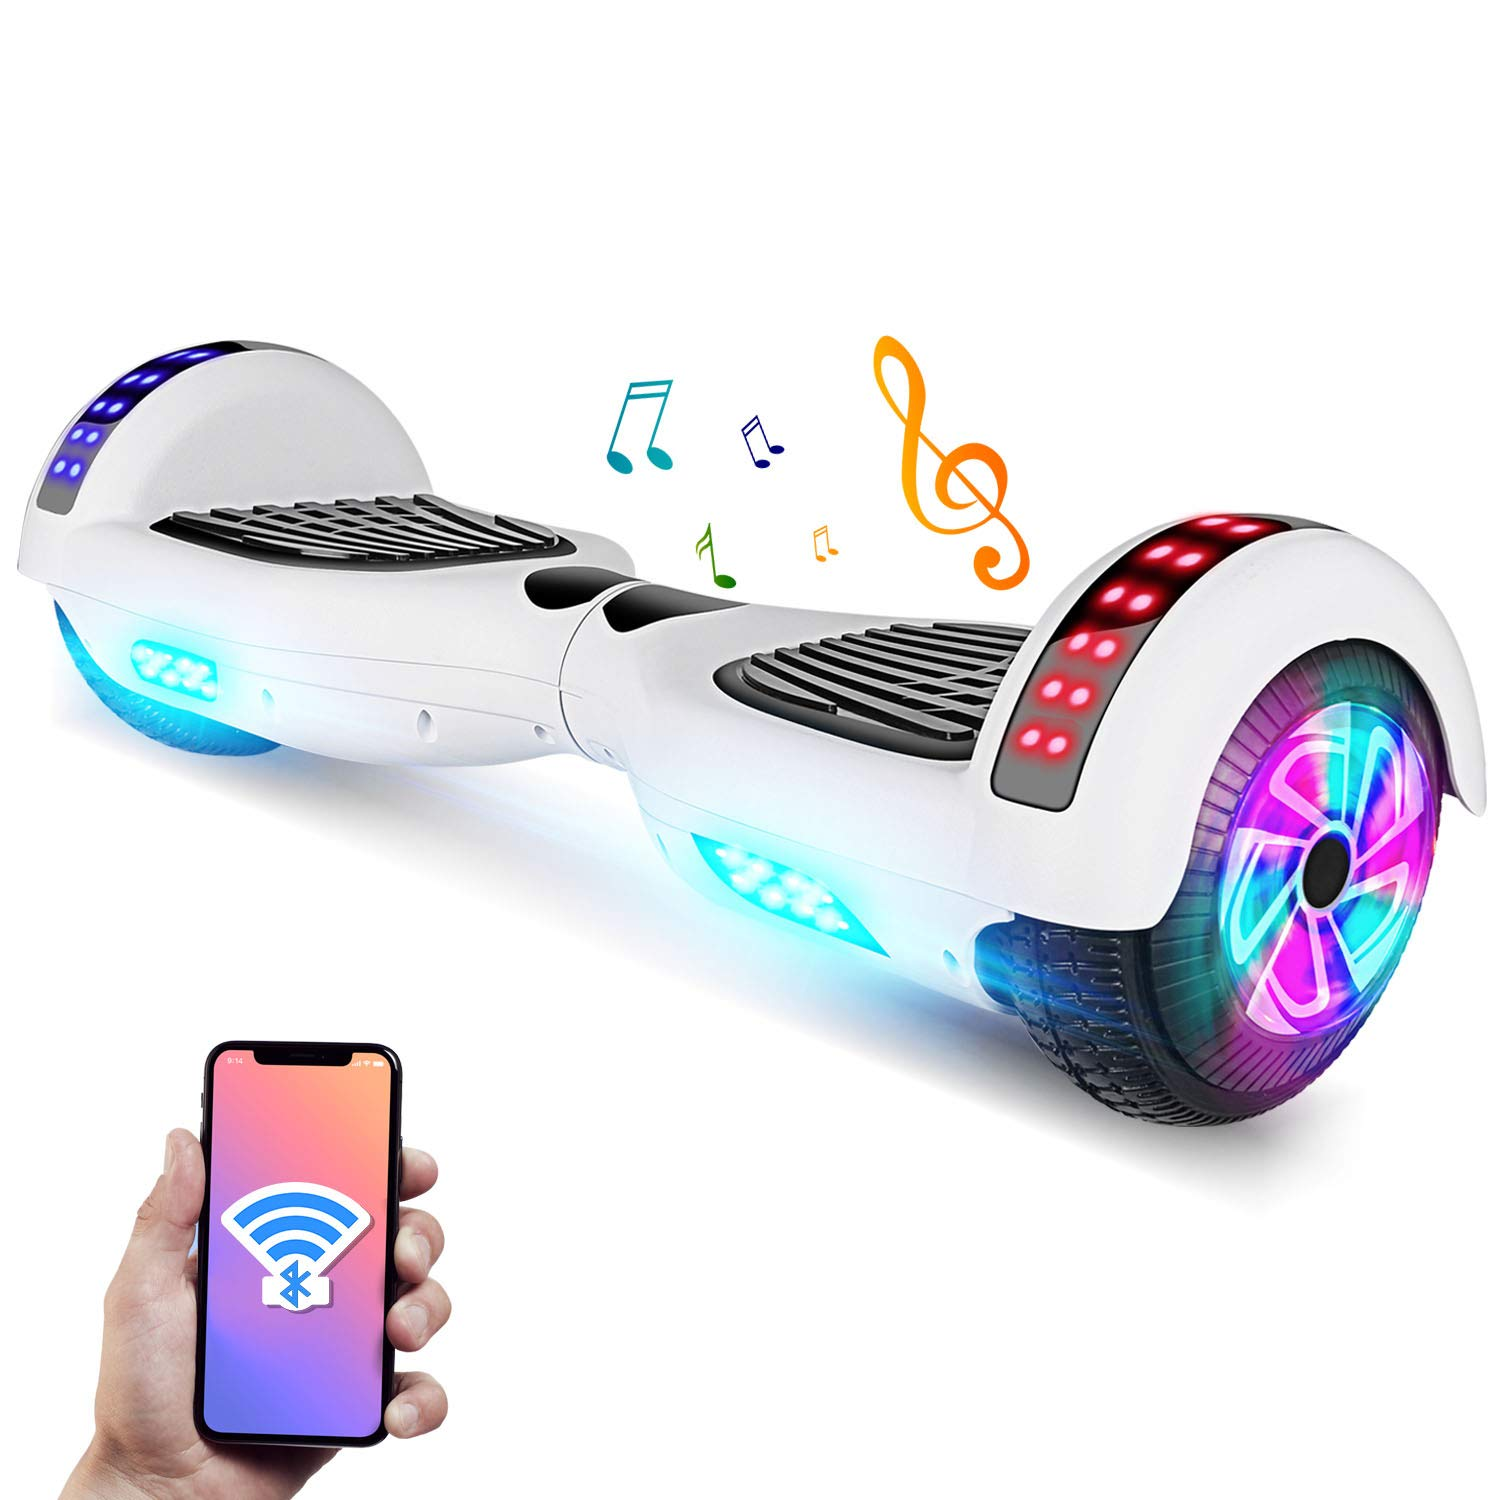 YHR 6.5'' Hoverboard -Self Balancing Scooter 2 Wheel Electric Scooter - UL Certified 2272 Bluetooth W/Speaker, LED Wheels and LED Lights (White)